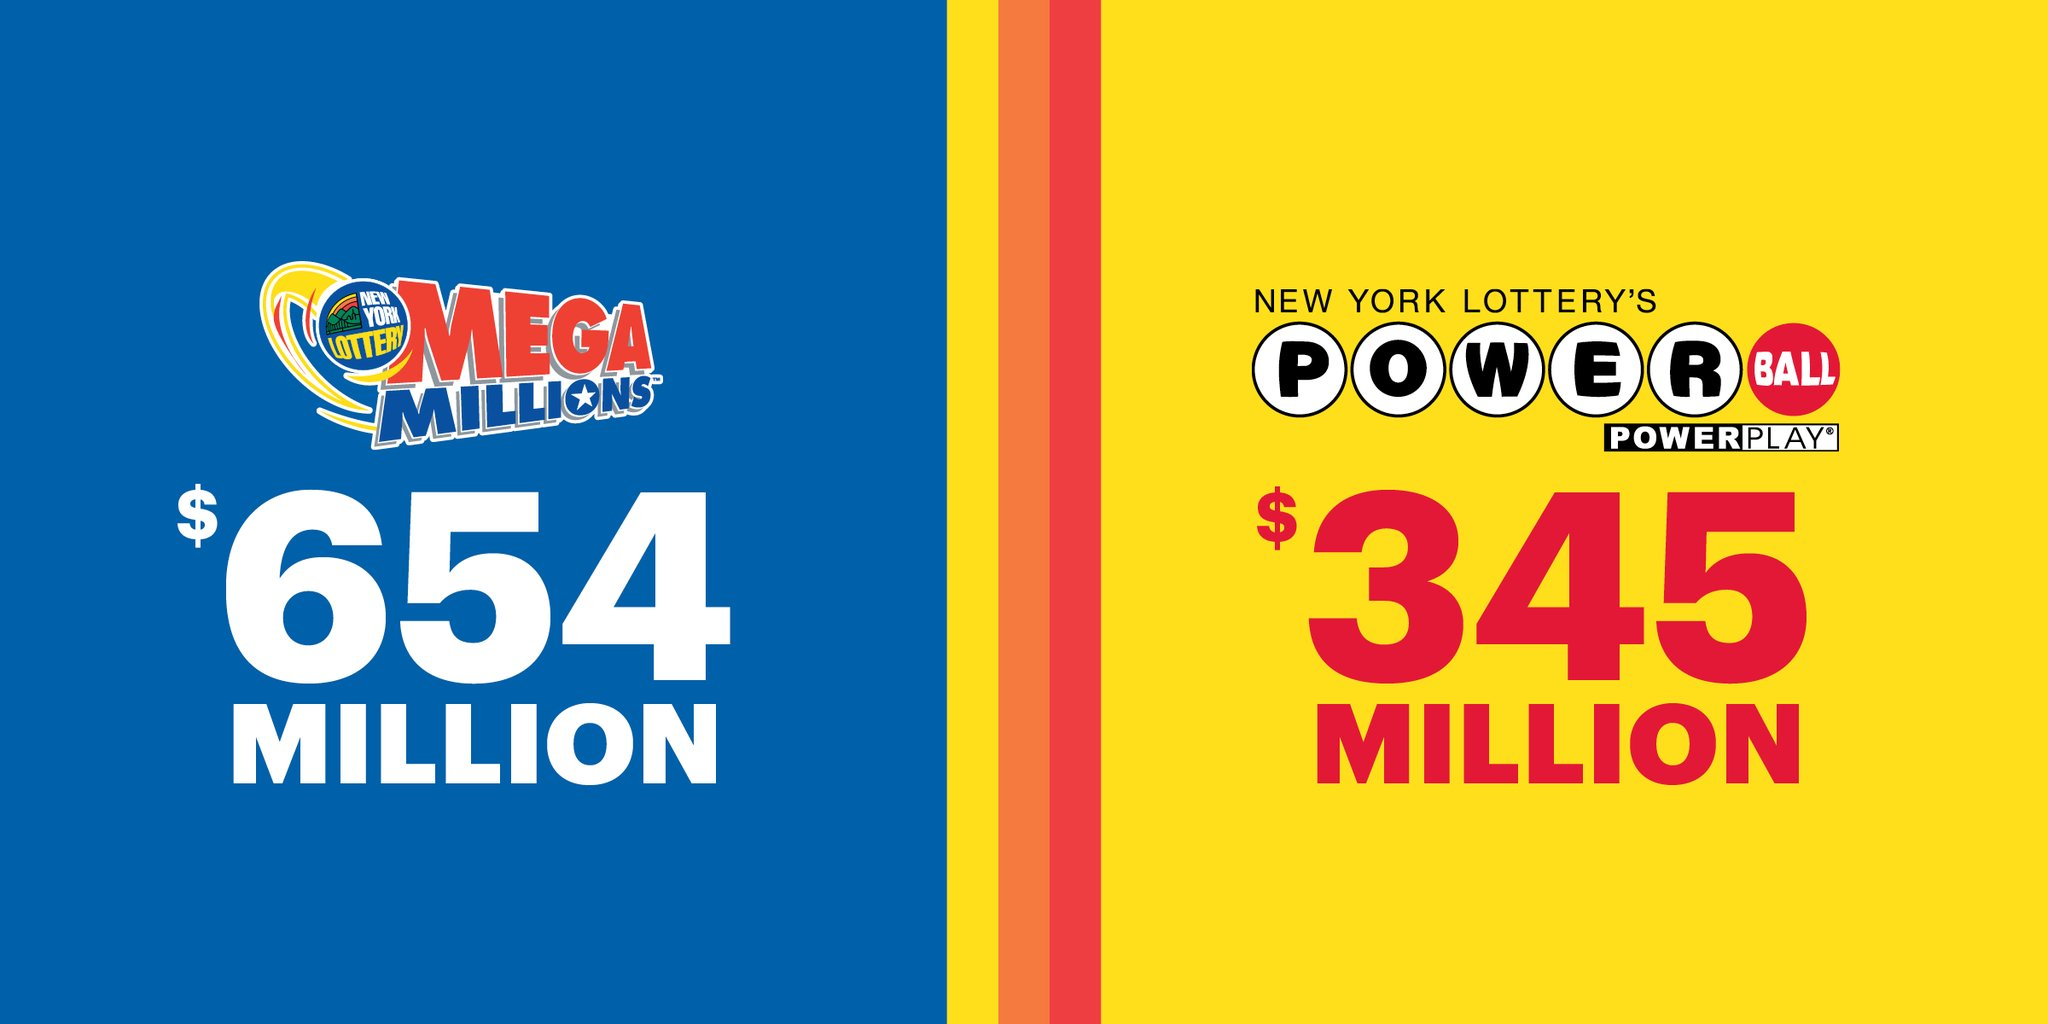 Power Ball Winner Numbers Powerball Jackpot Is Now 345million Dollars